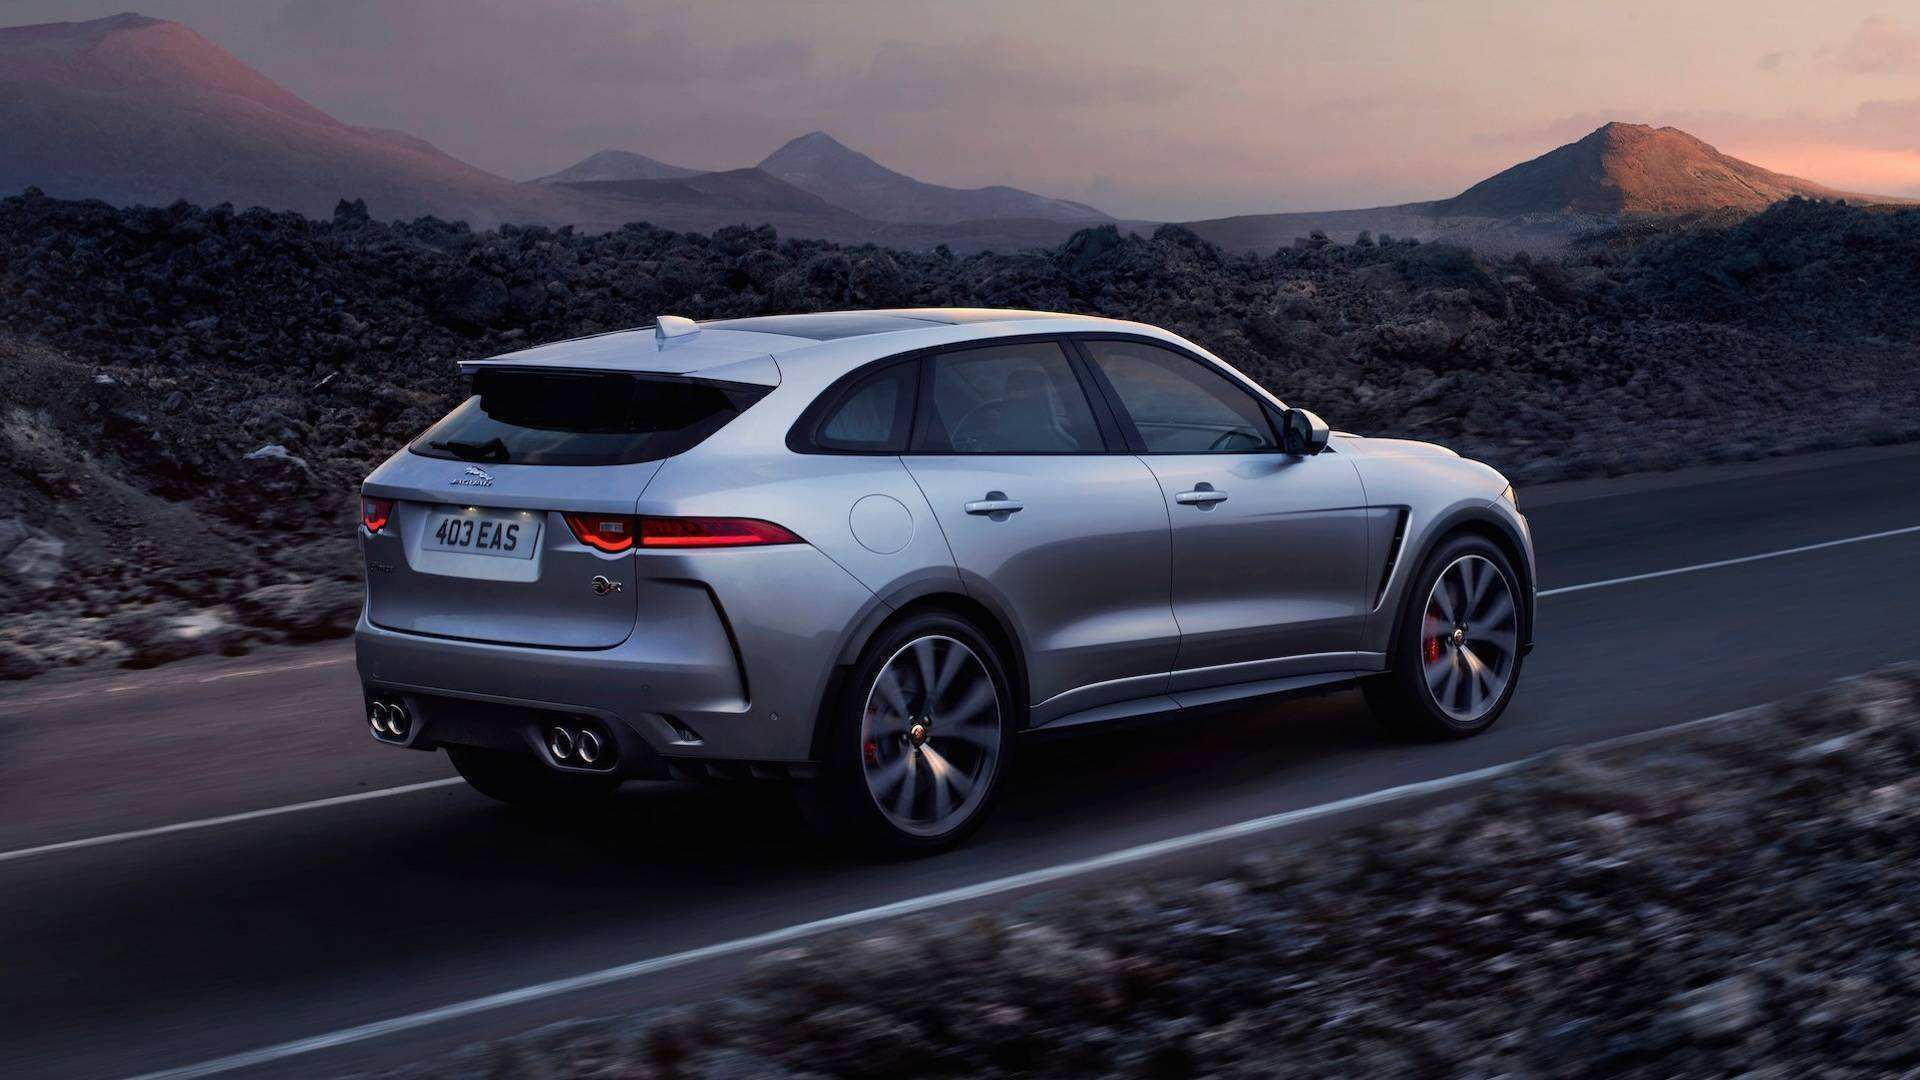 54 The Best Suv Jaguar 2019 New Model And Performance